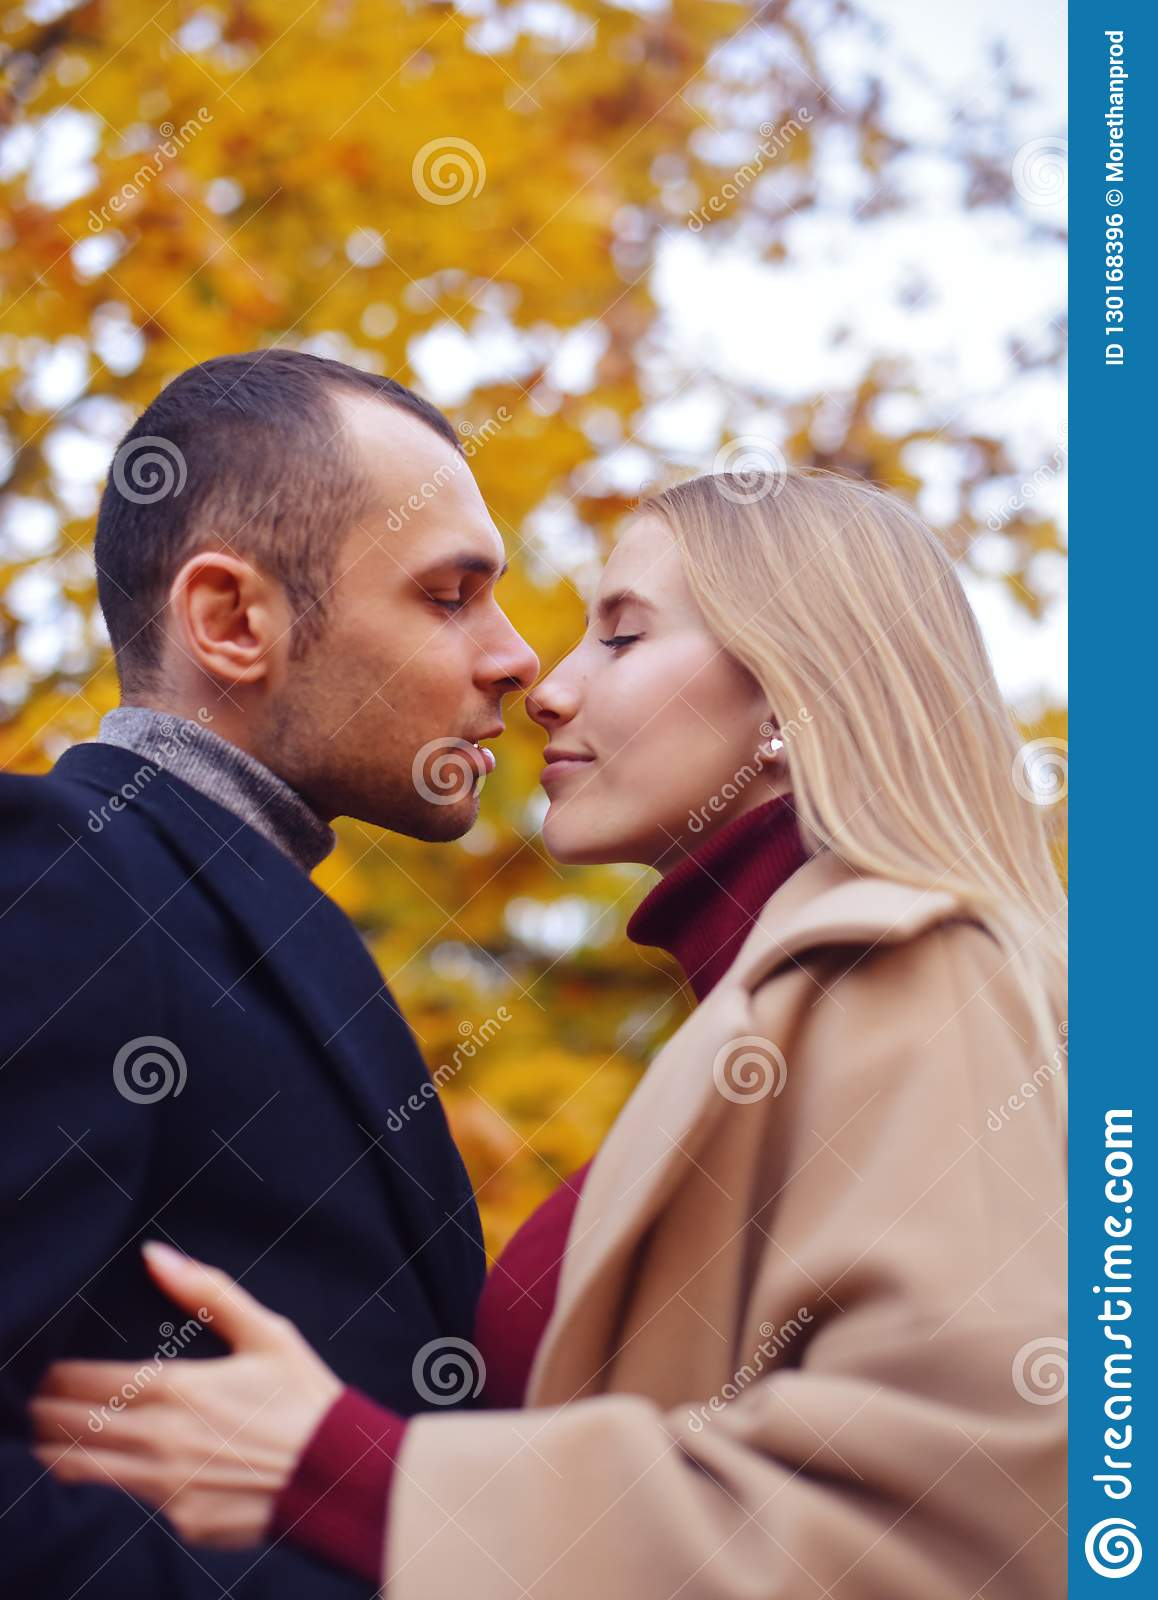 very good dating sites